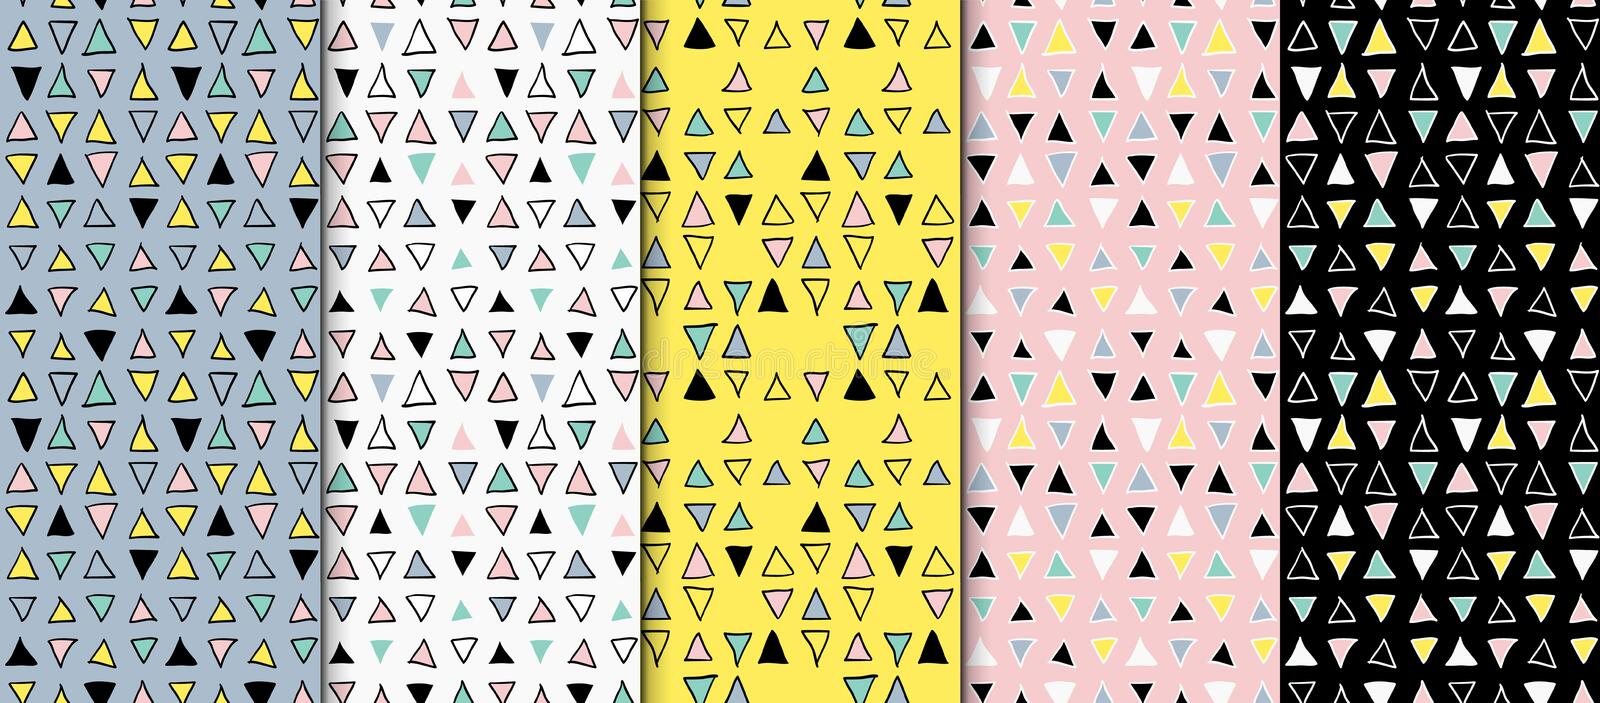 Abstract geometric seamless hand drawn pattern set. Modern free hand textures. Colorful geometric doodle backgrounds. vector illustration